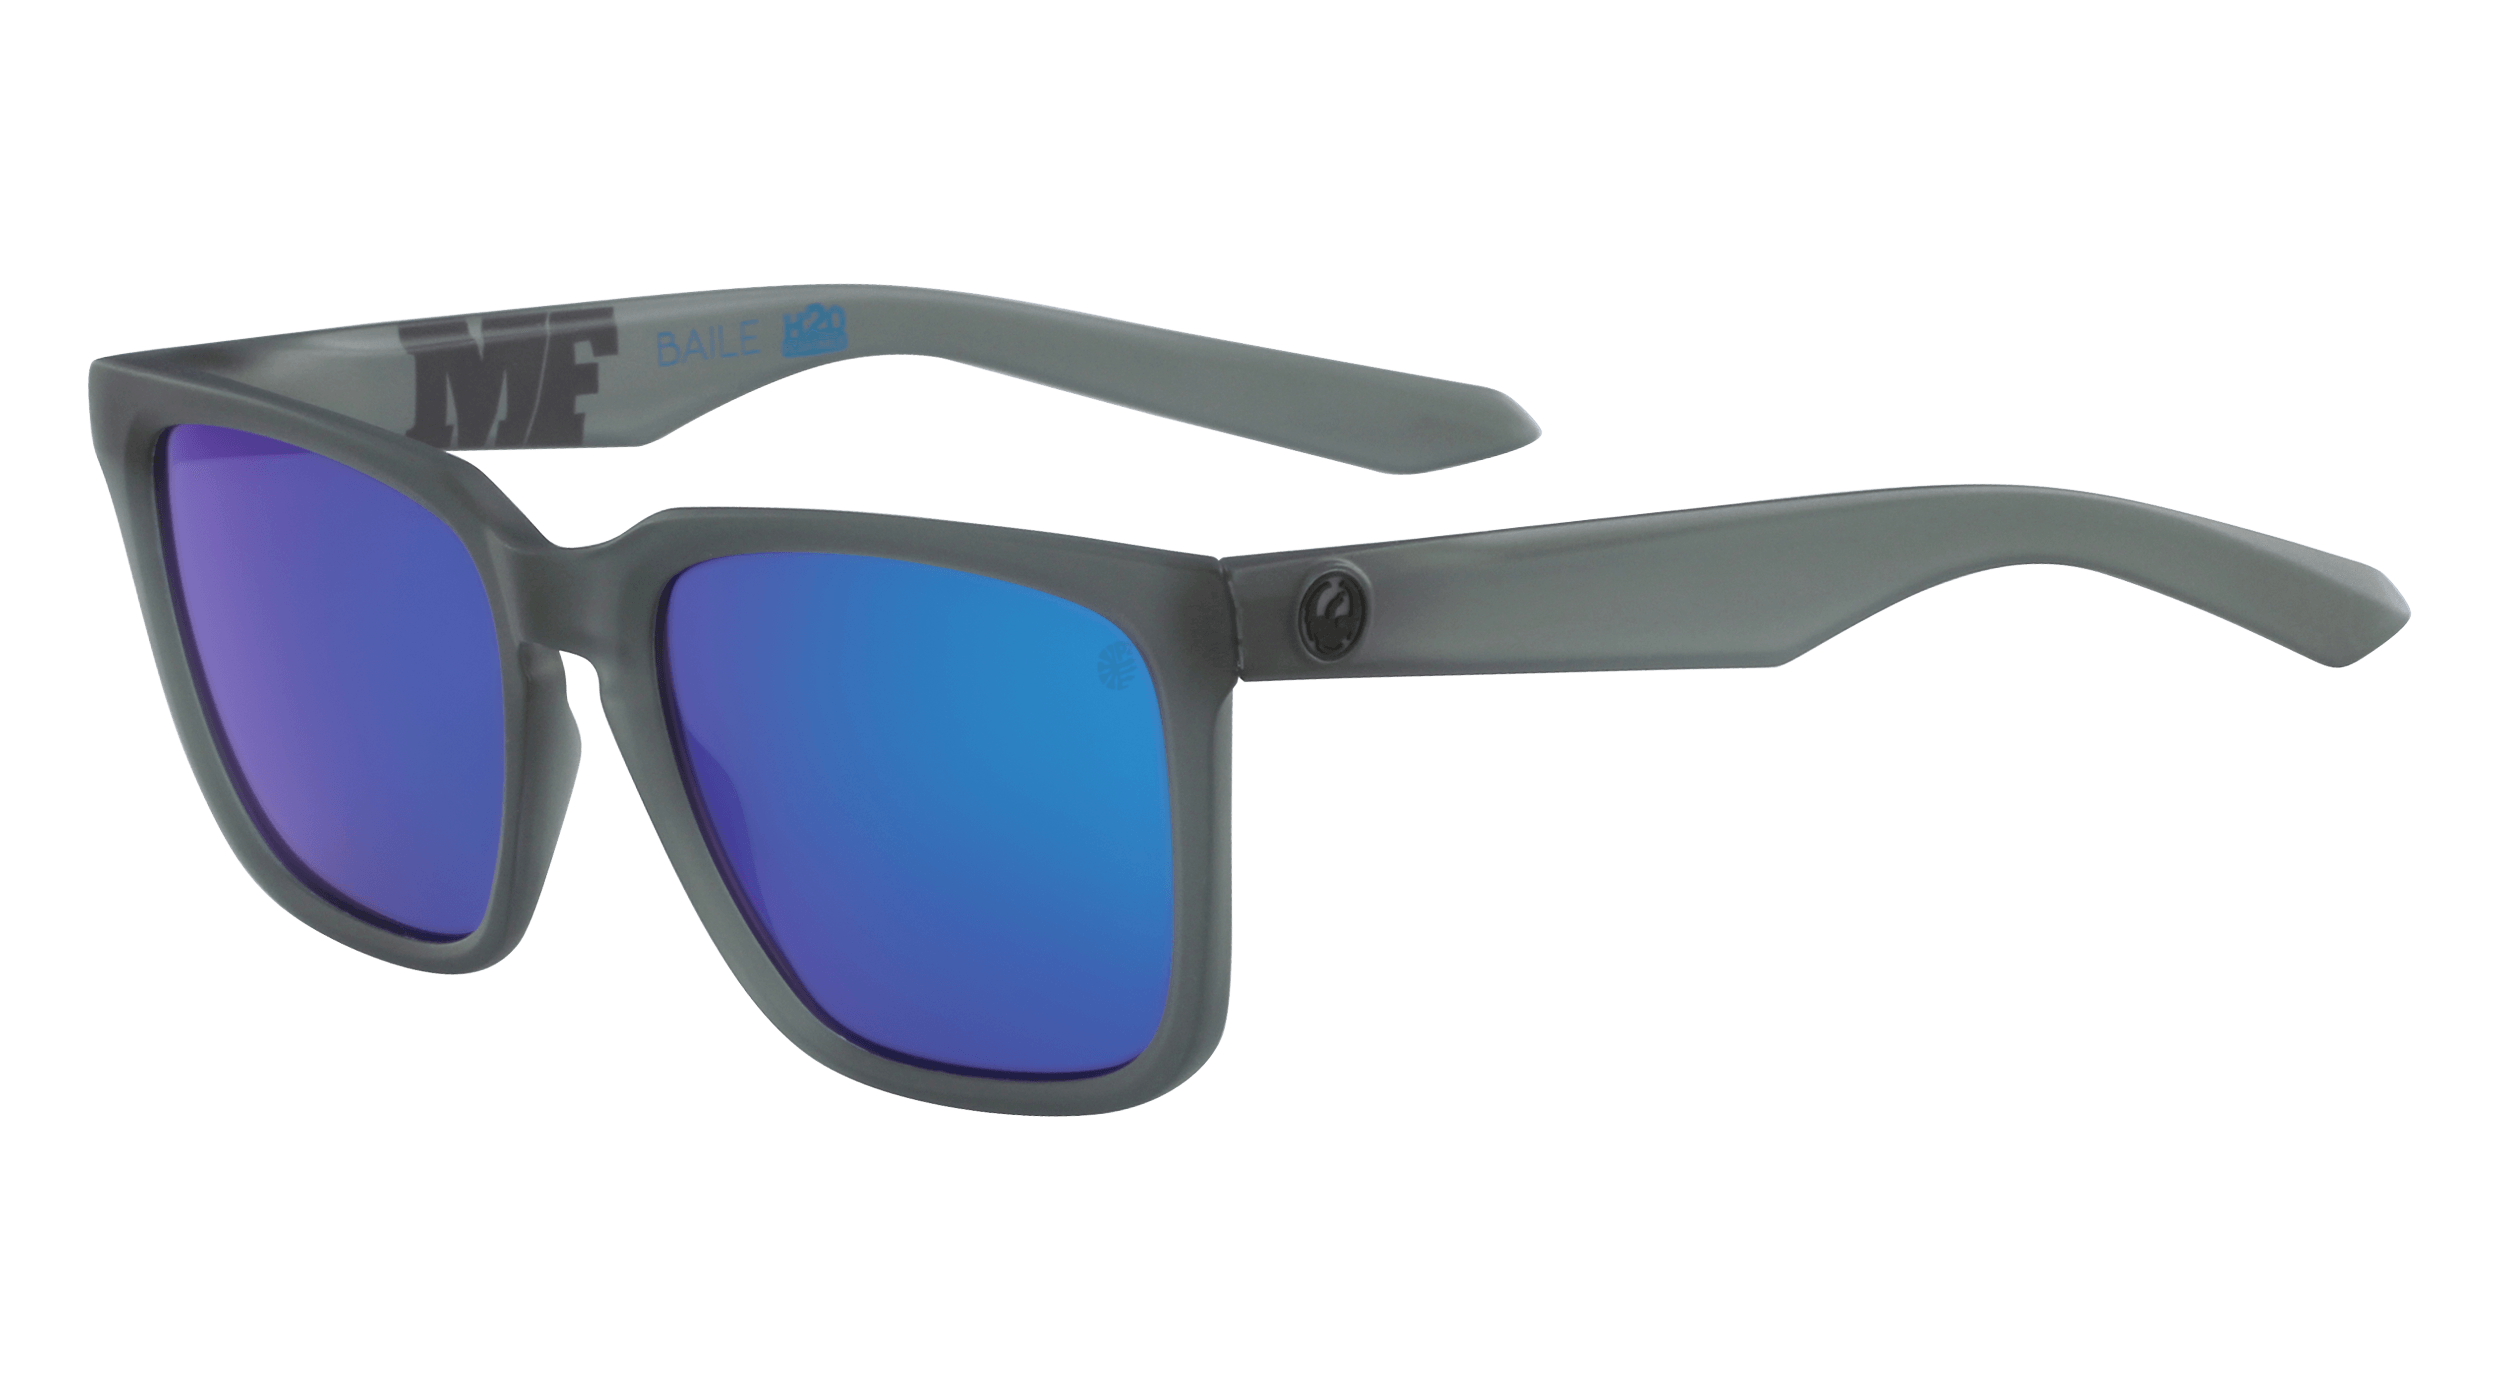 Dragon Baile H20 Sunglasses